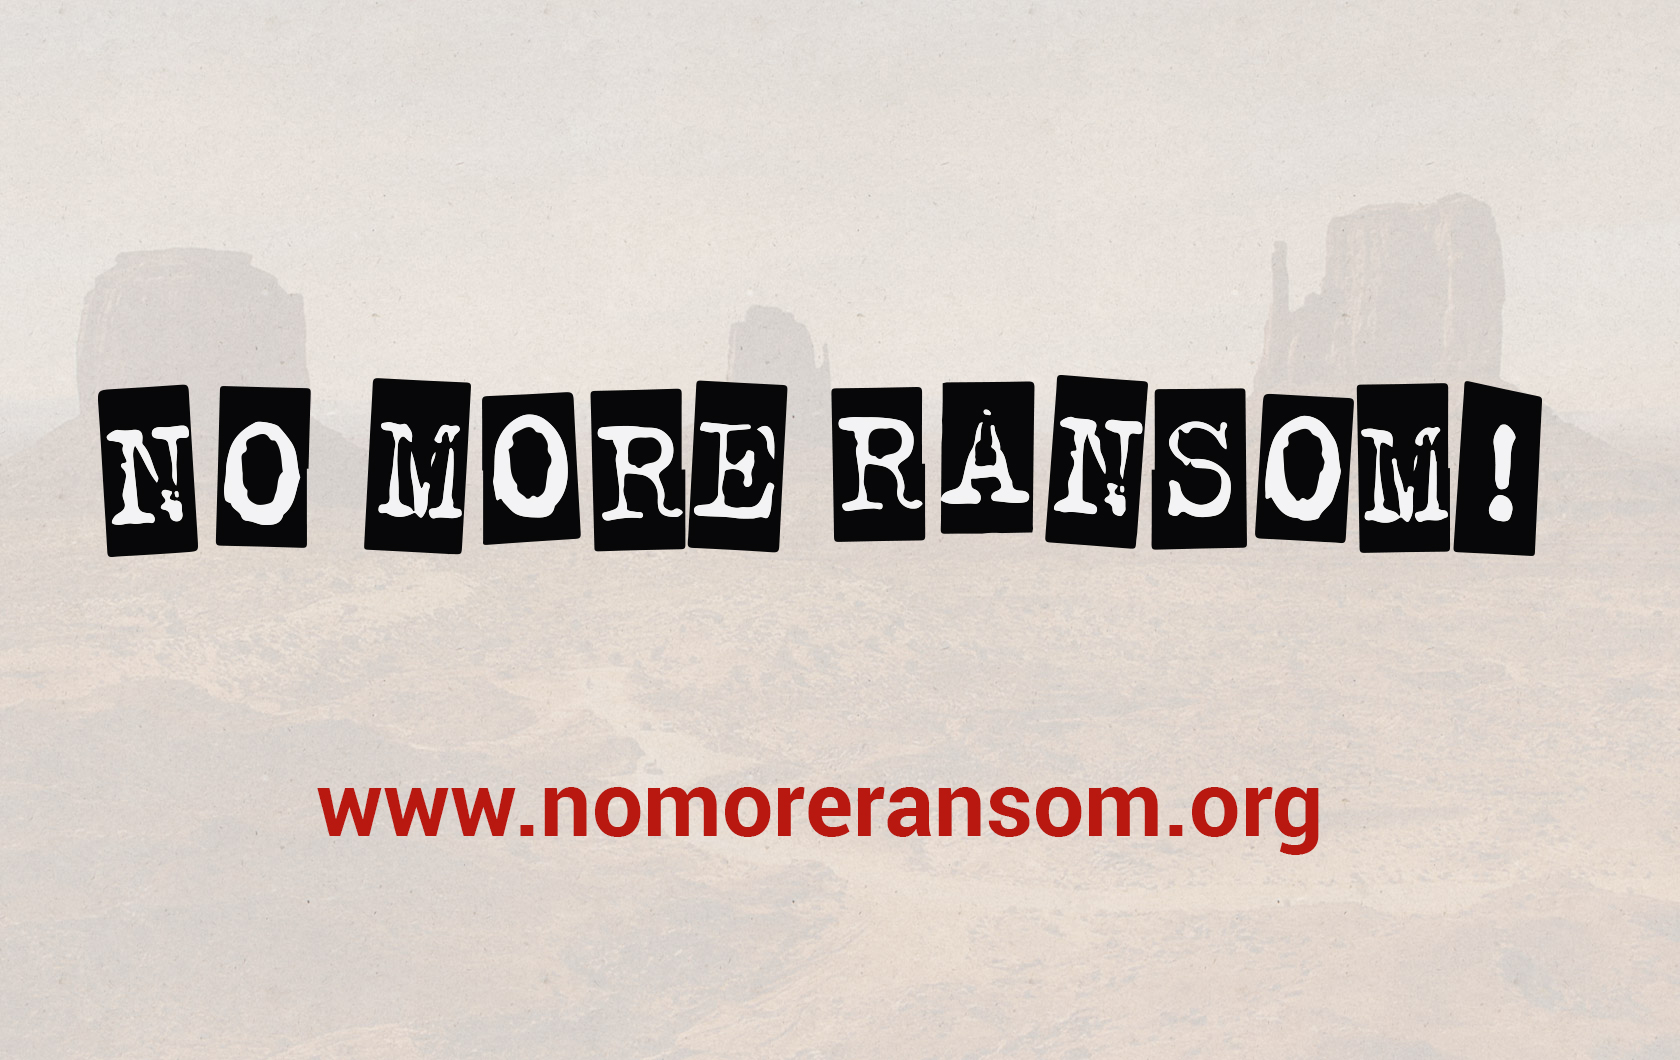 Coveware Joins No More Ransom Org! - Covewware is excited to partner with a global network of top Cyber security and law enforcement agencies